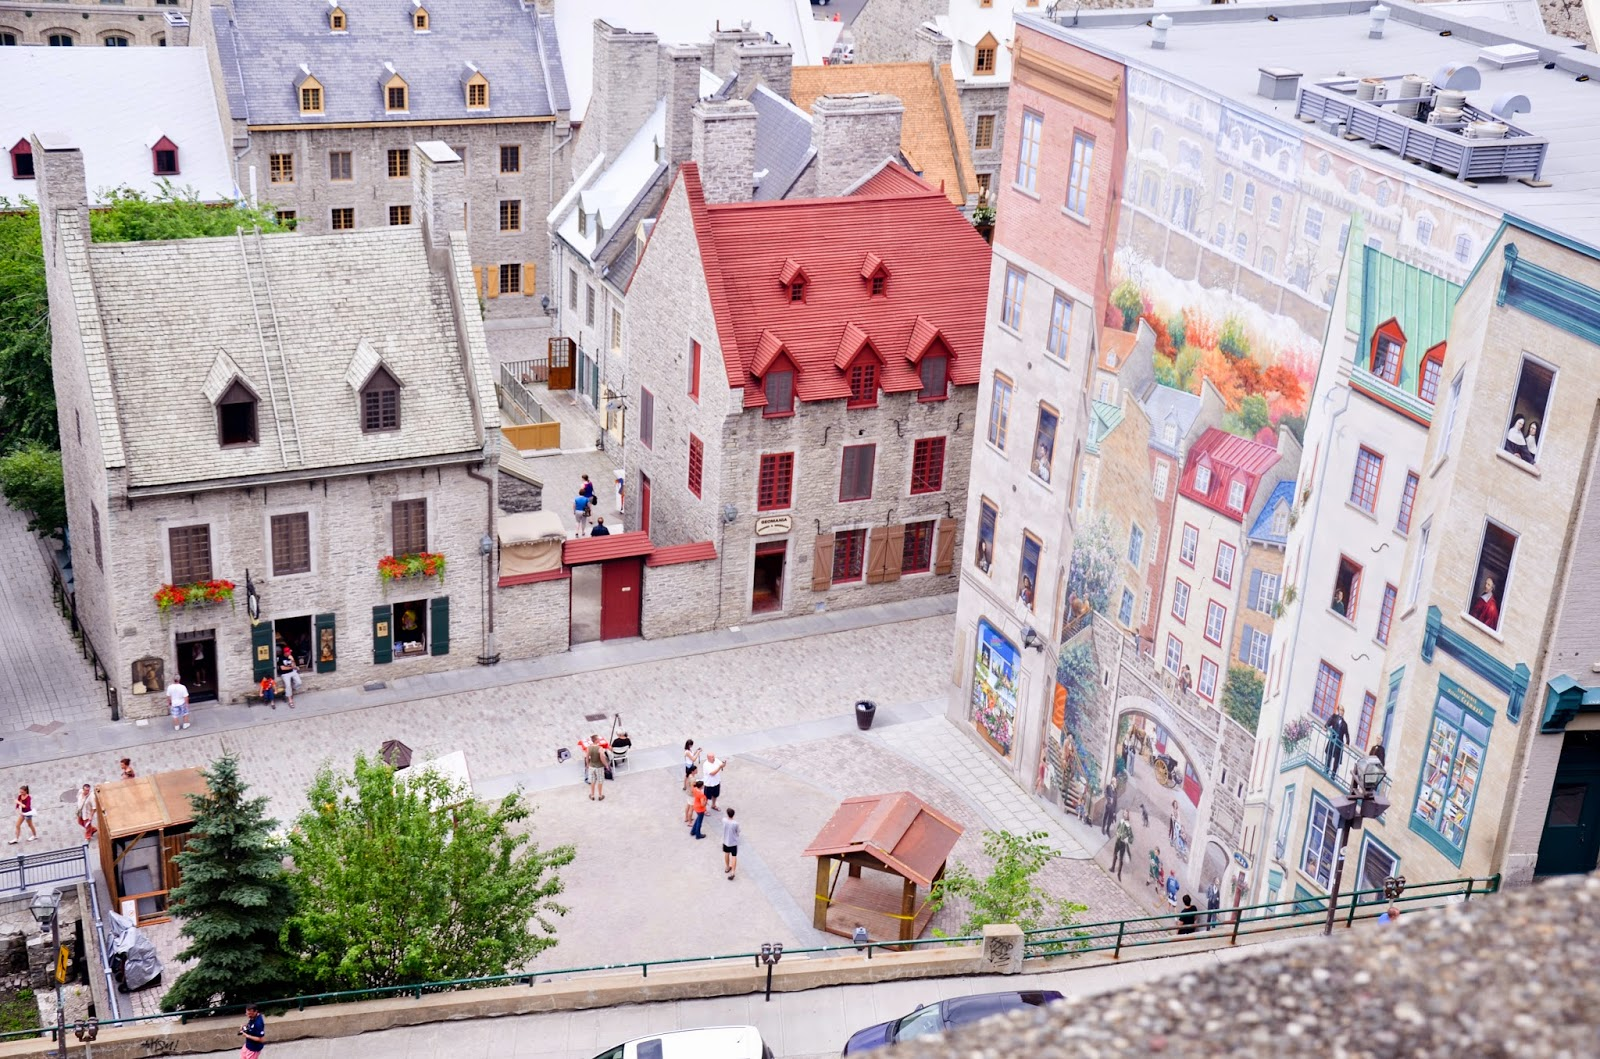 Wall murals in Old Quebec neighborhood, on Rue Notredame near Place Royale